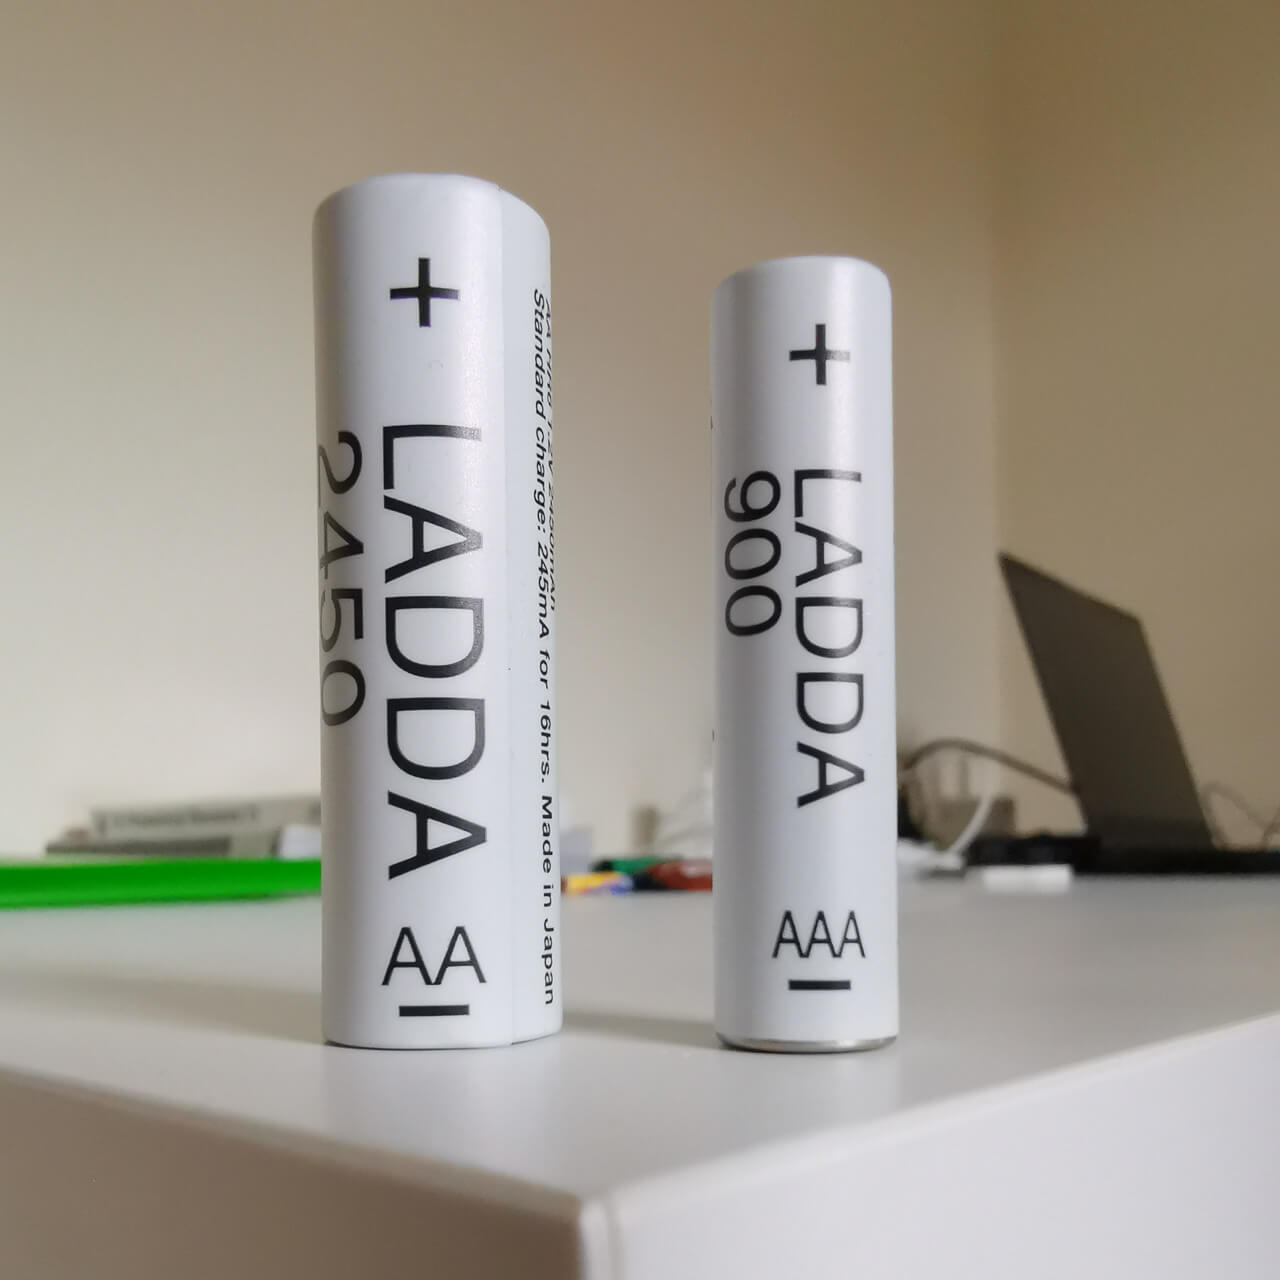 Ikea Ladda AAA and AA Batteries